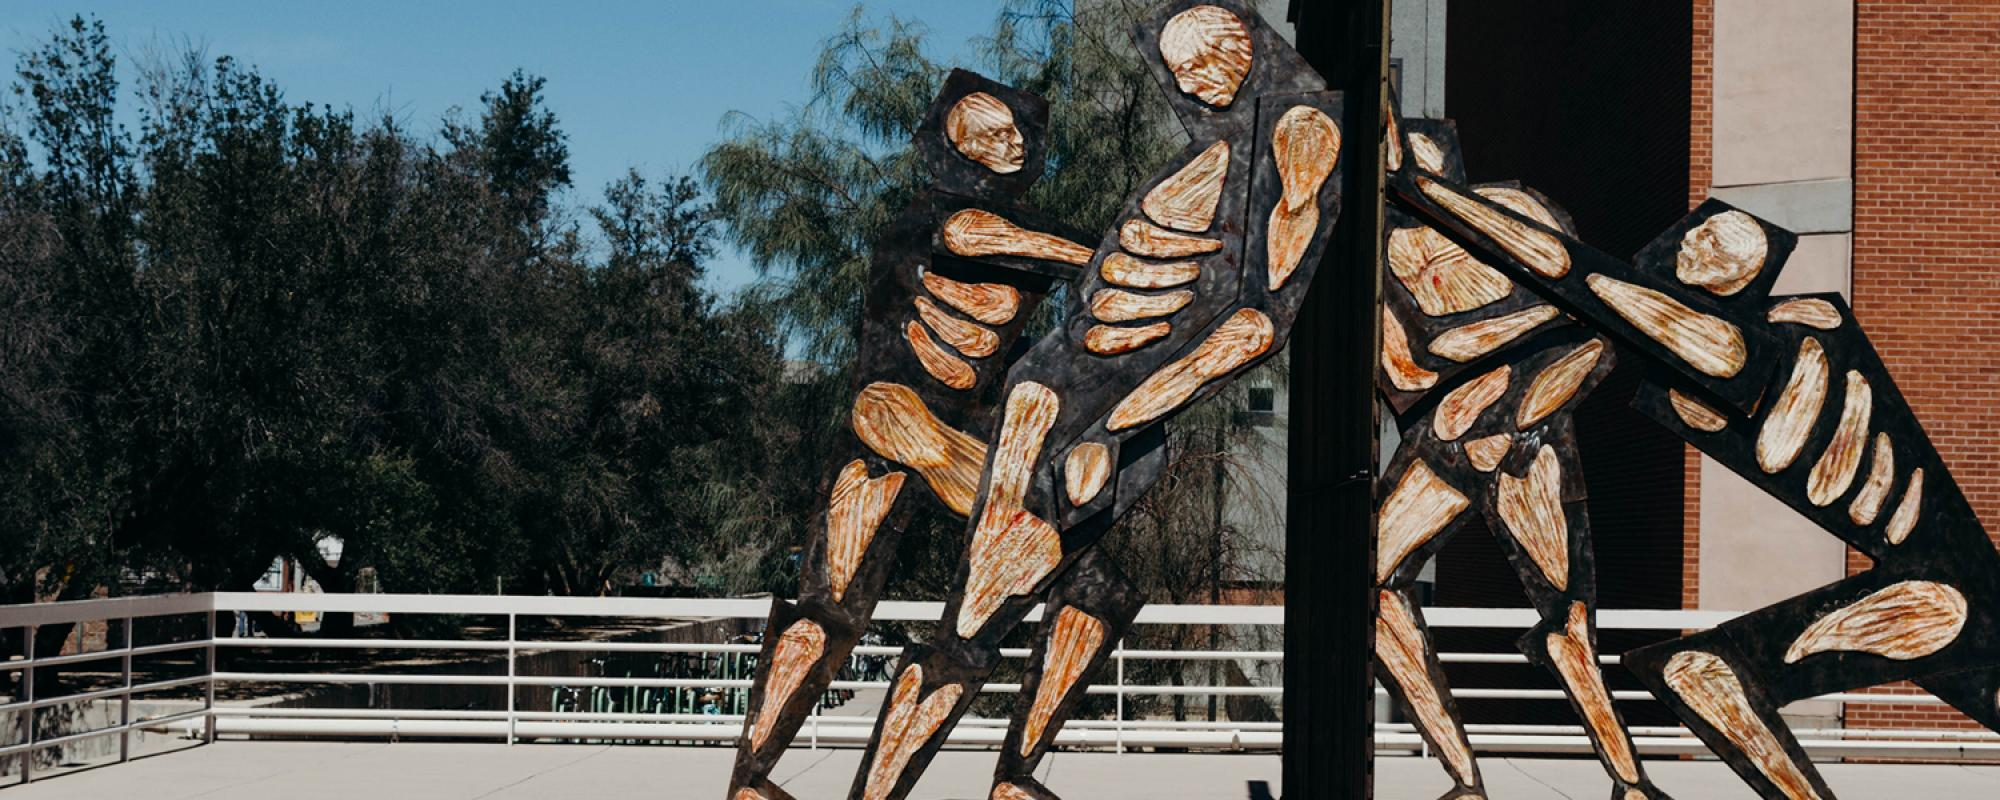 Statue showing muscle and bones human figures pushing on both sides of border wall